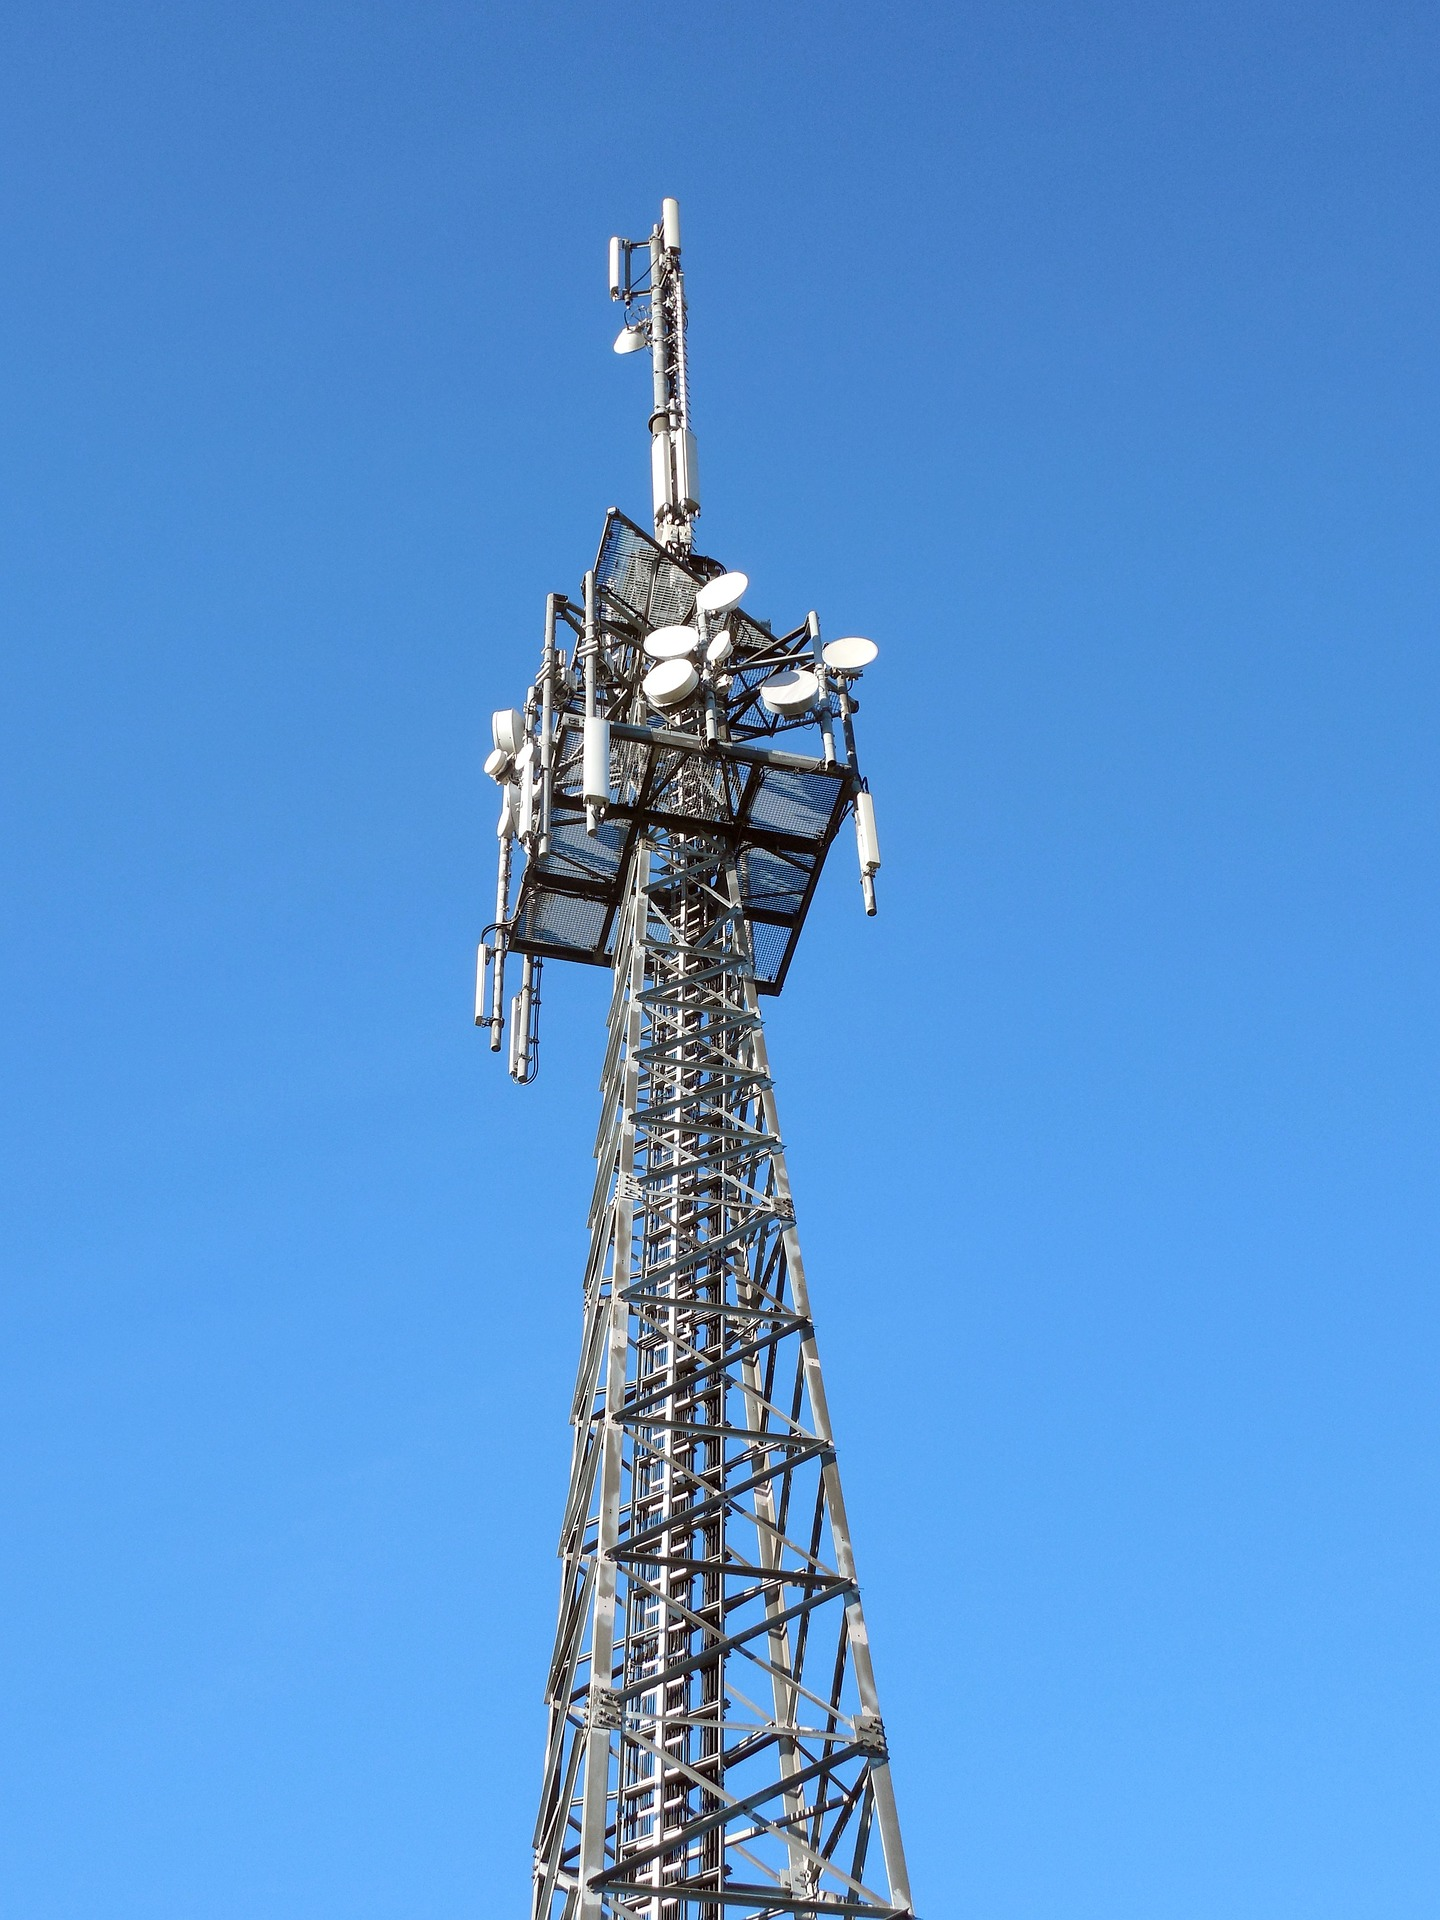 New List Of Harmonised Standards Published For The Radio